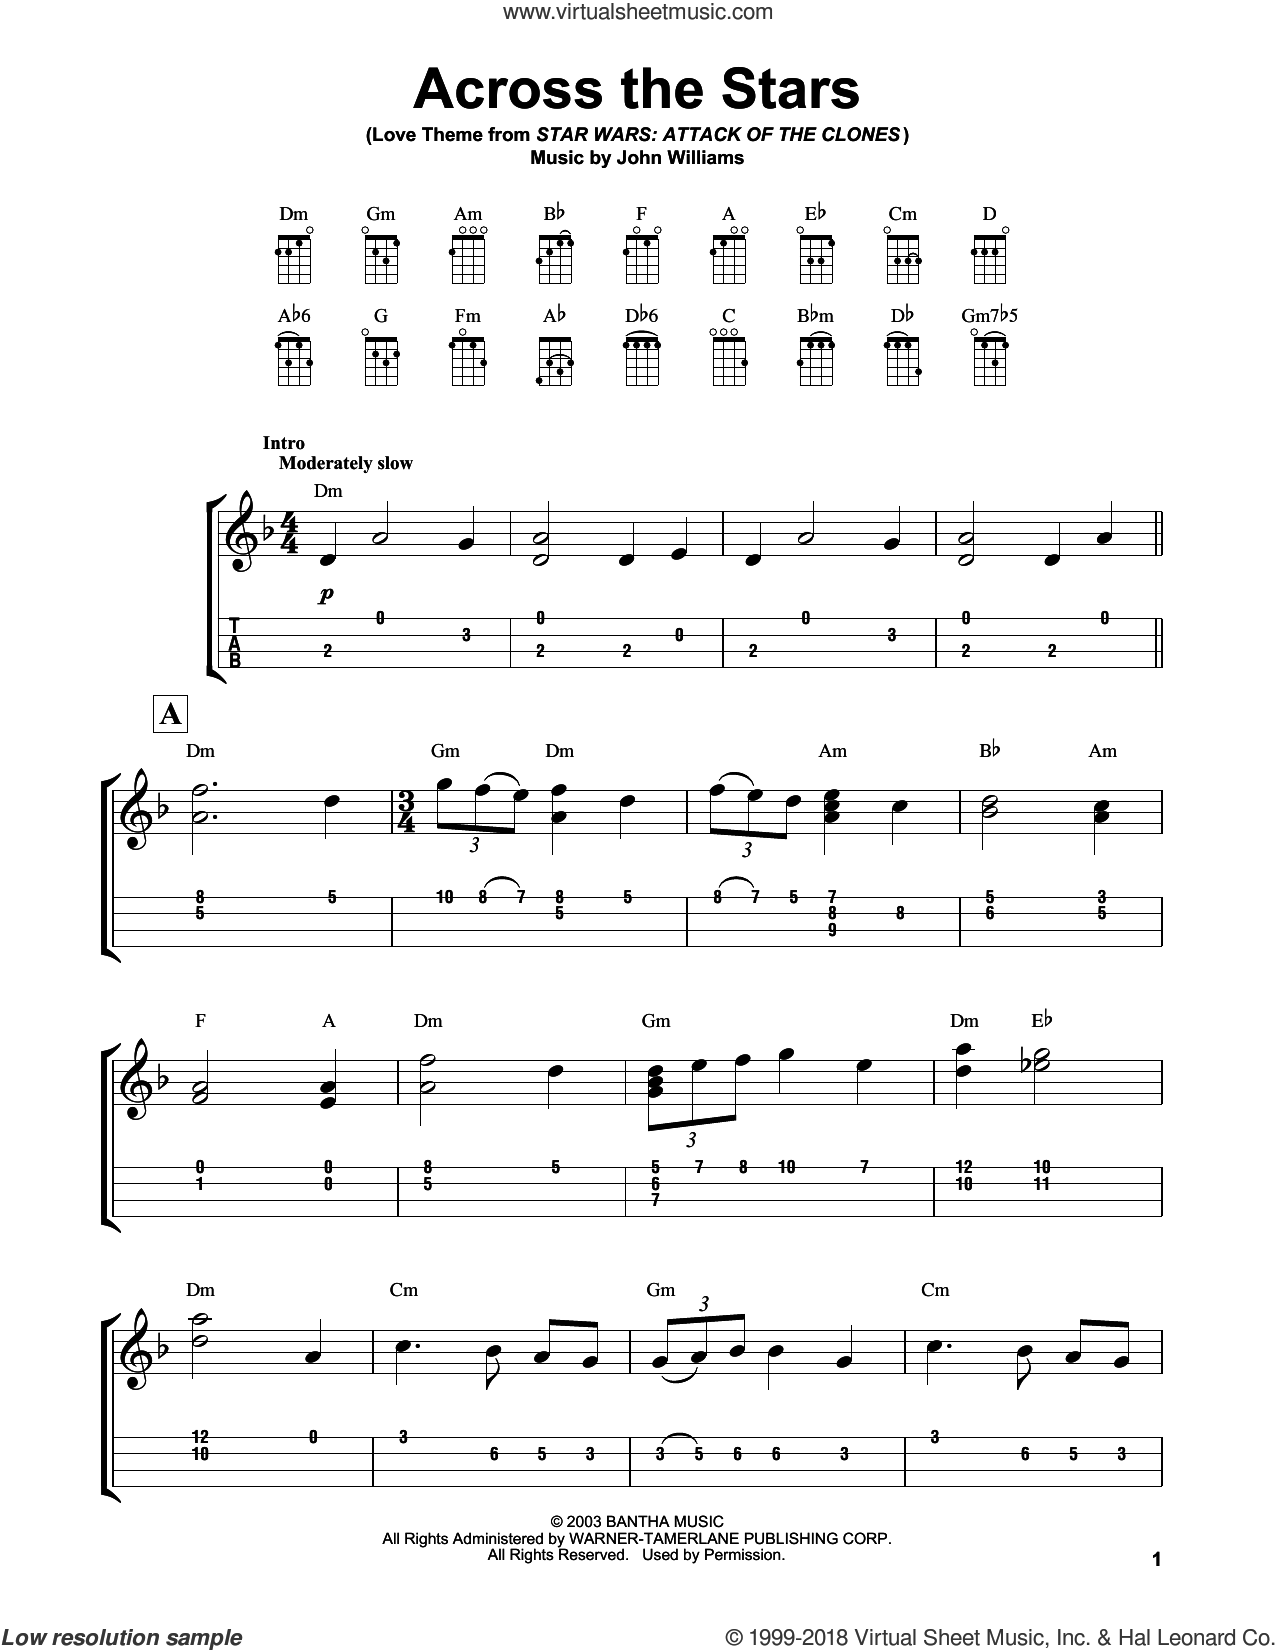 Across The Stars (from Star Wars: Attack of the Clones) sheet music for ukulele by John Williams, intermediate skill level